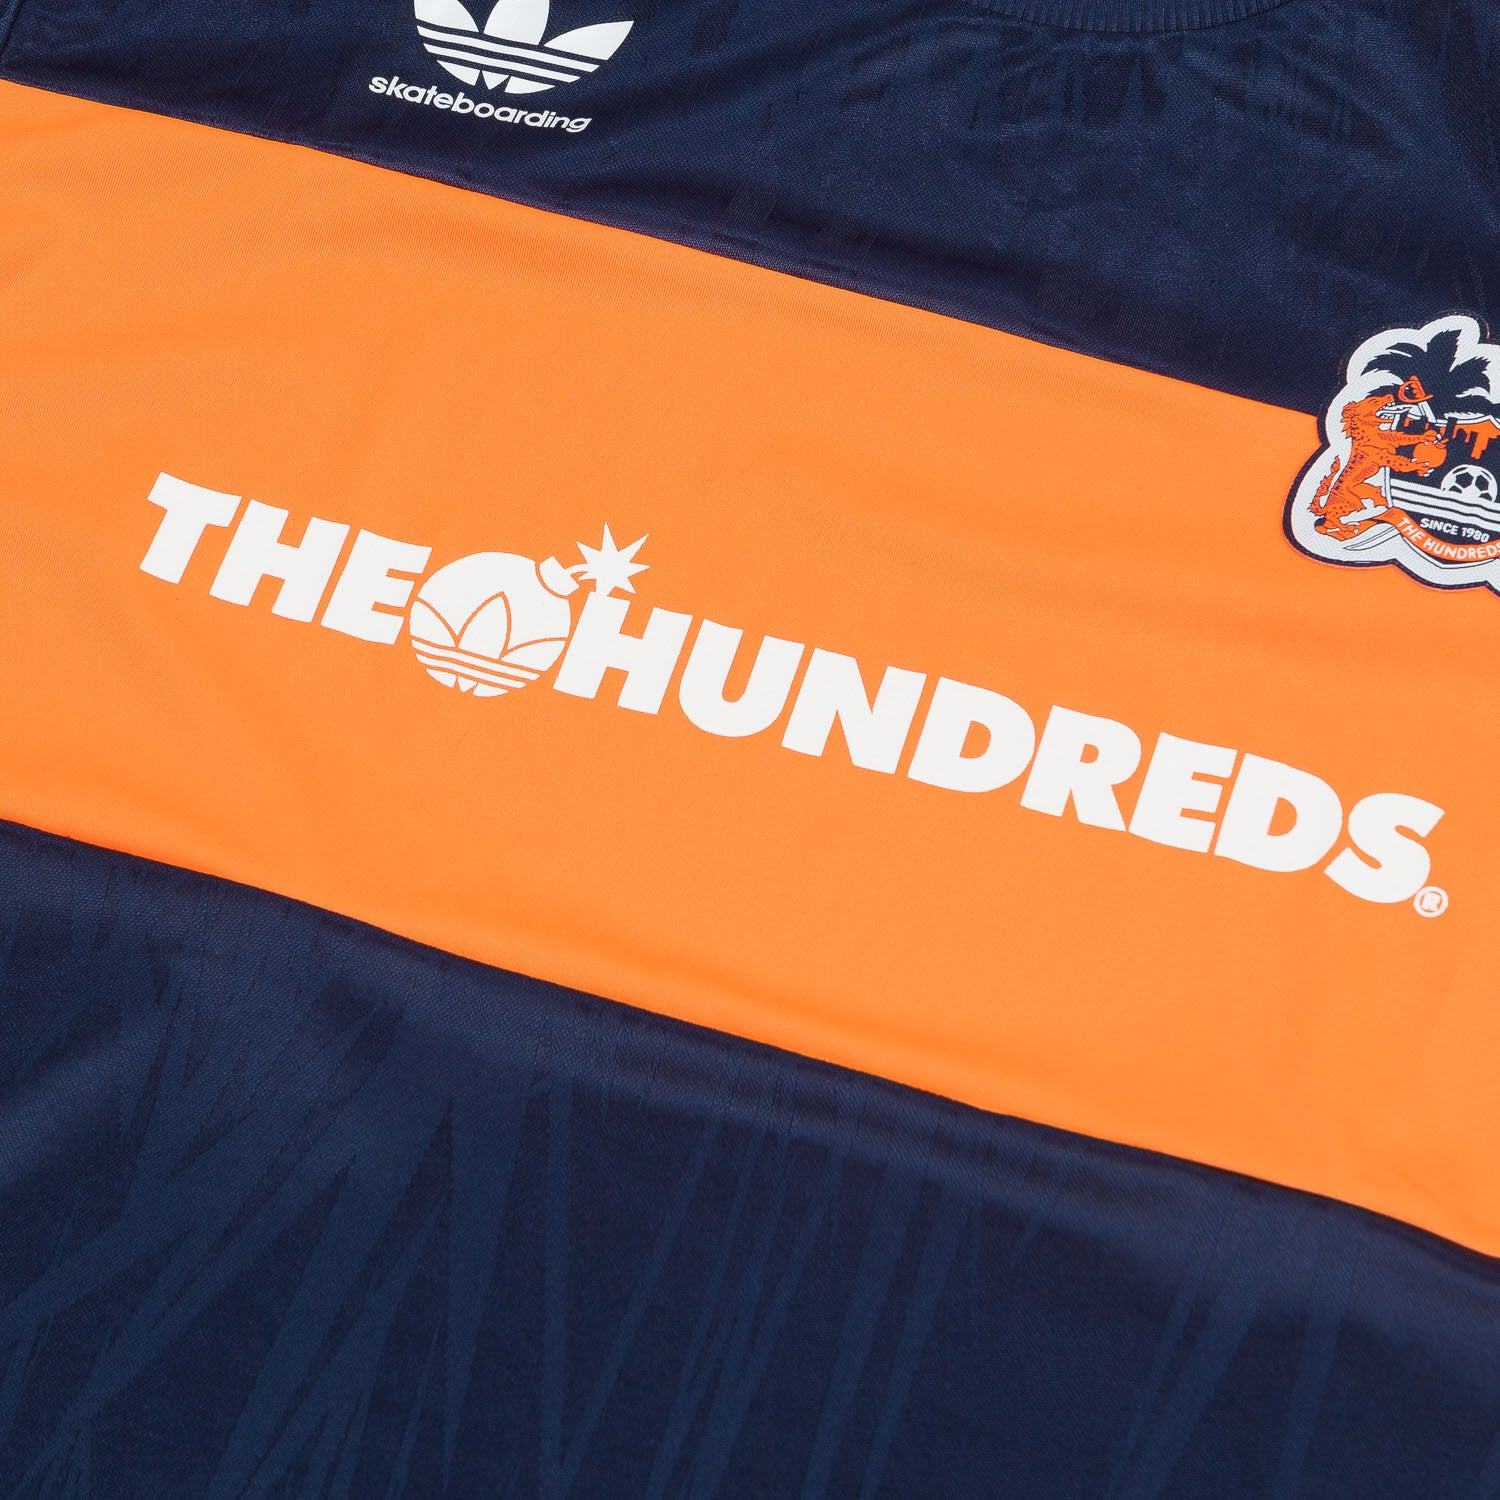 Adidas X The Hundreds Short Sleeve Soccer Jersey - Collegiate Navy